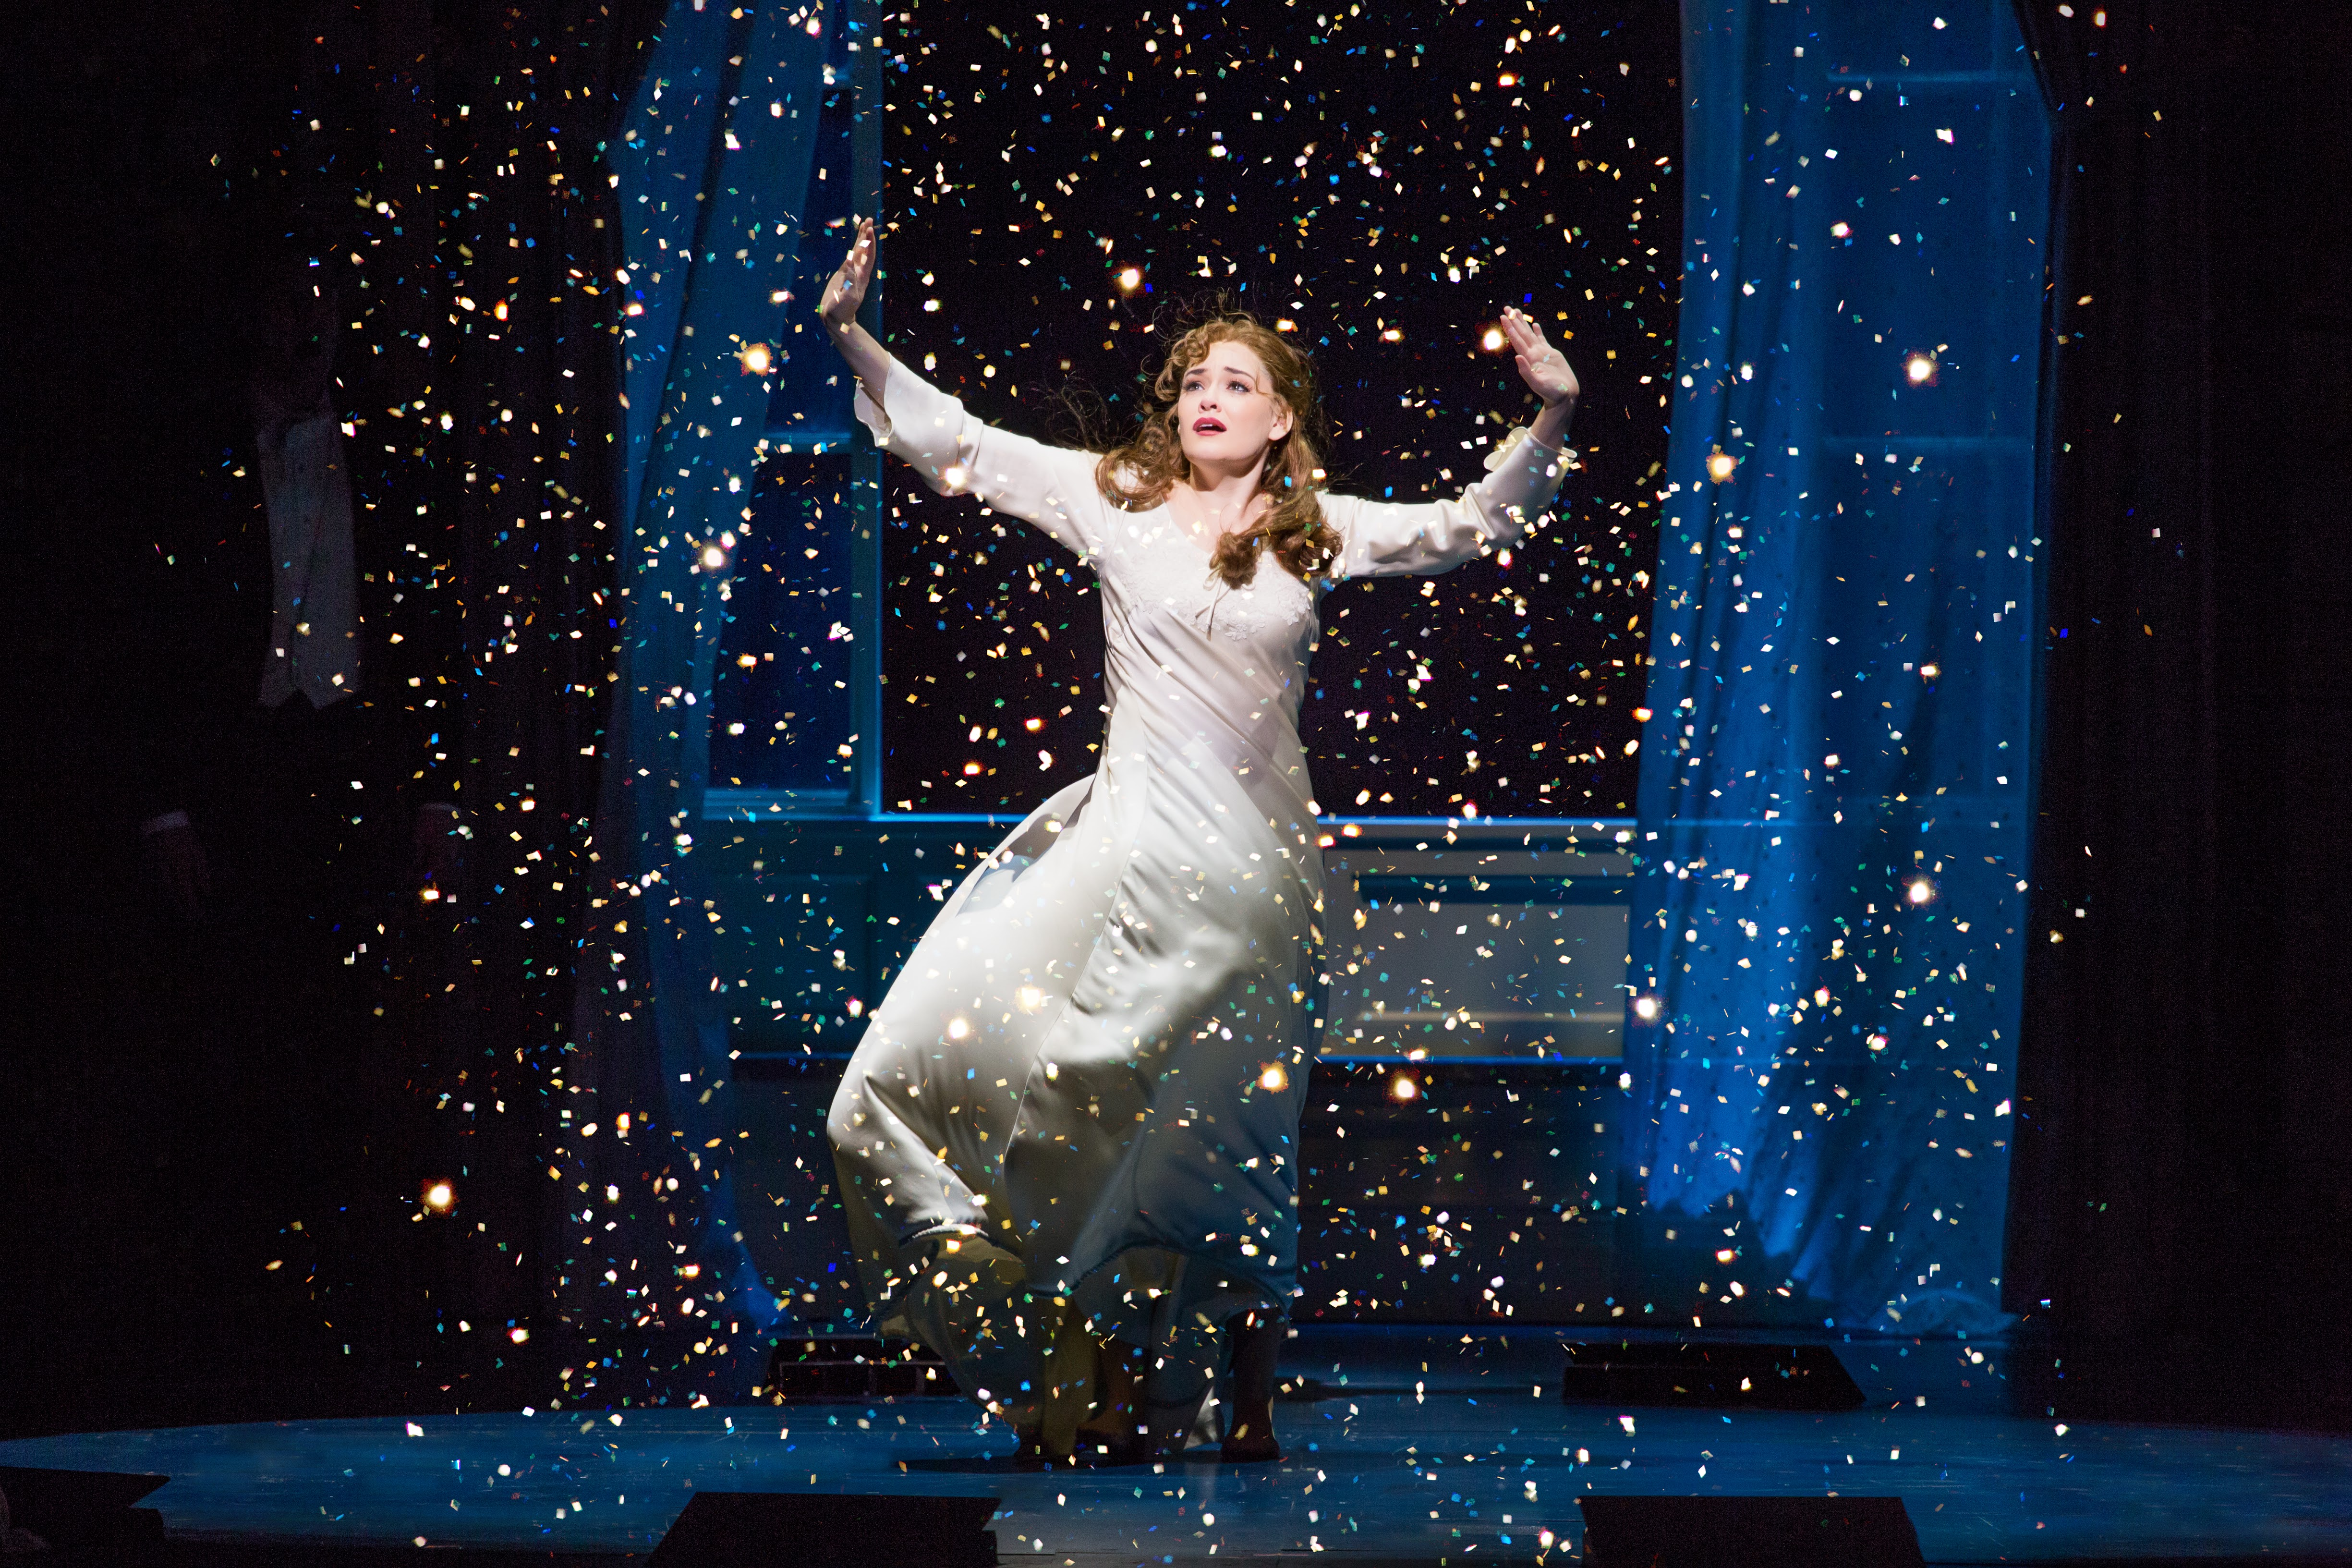 This is the most amazing scene in the Finding Neverland production. The set design and special effects are breathtaking!